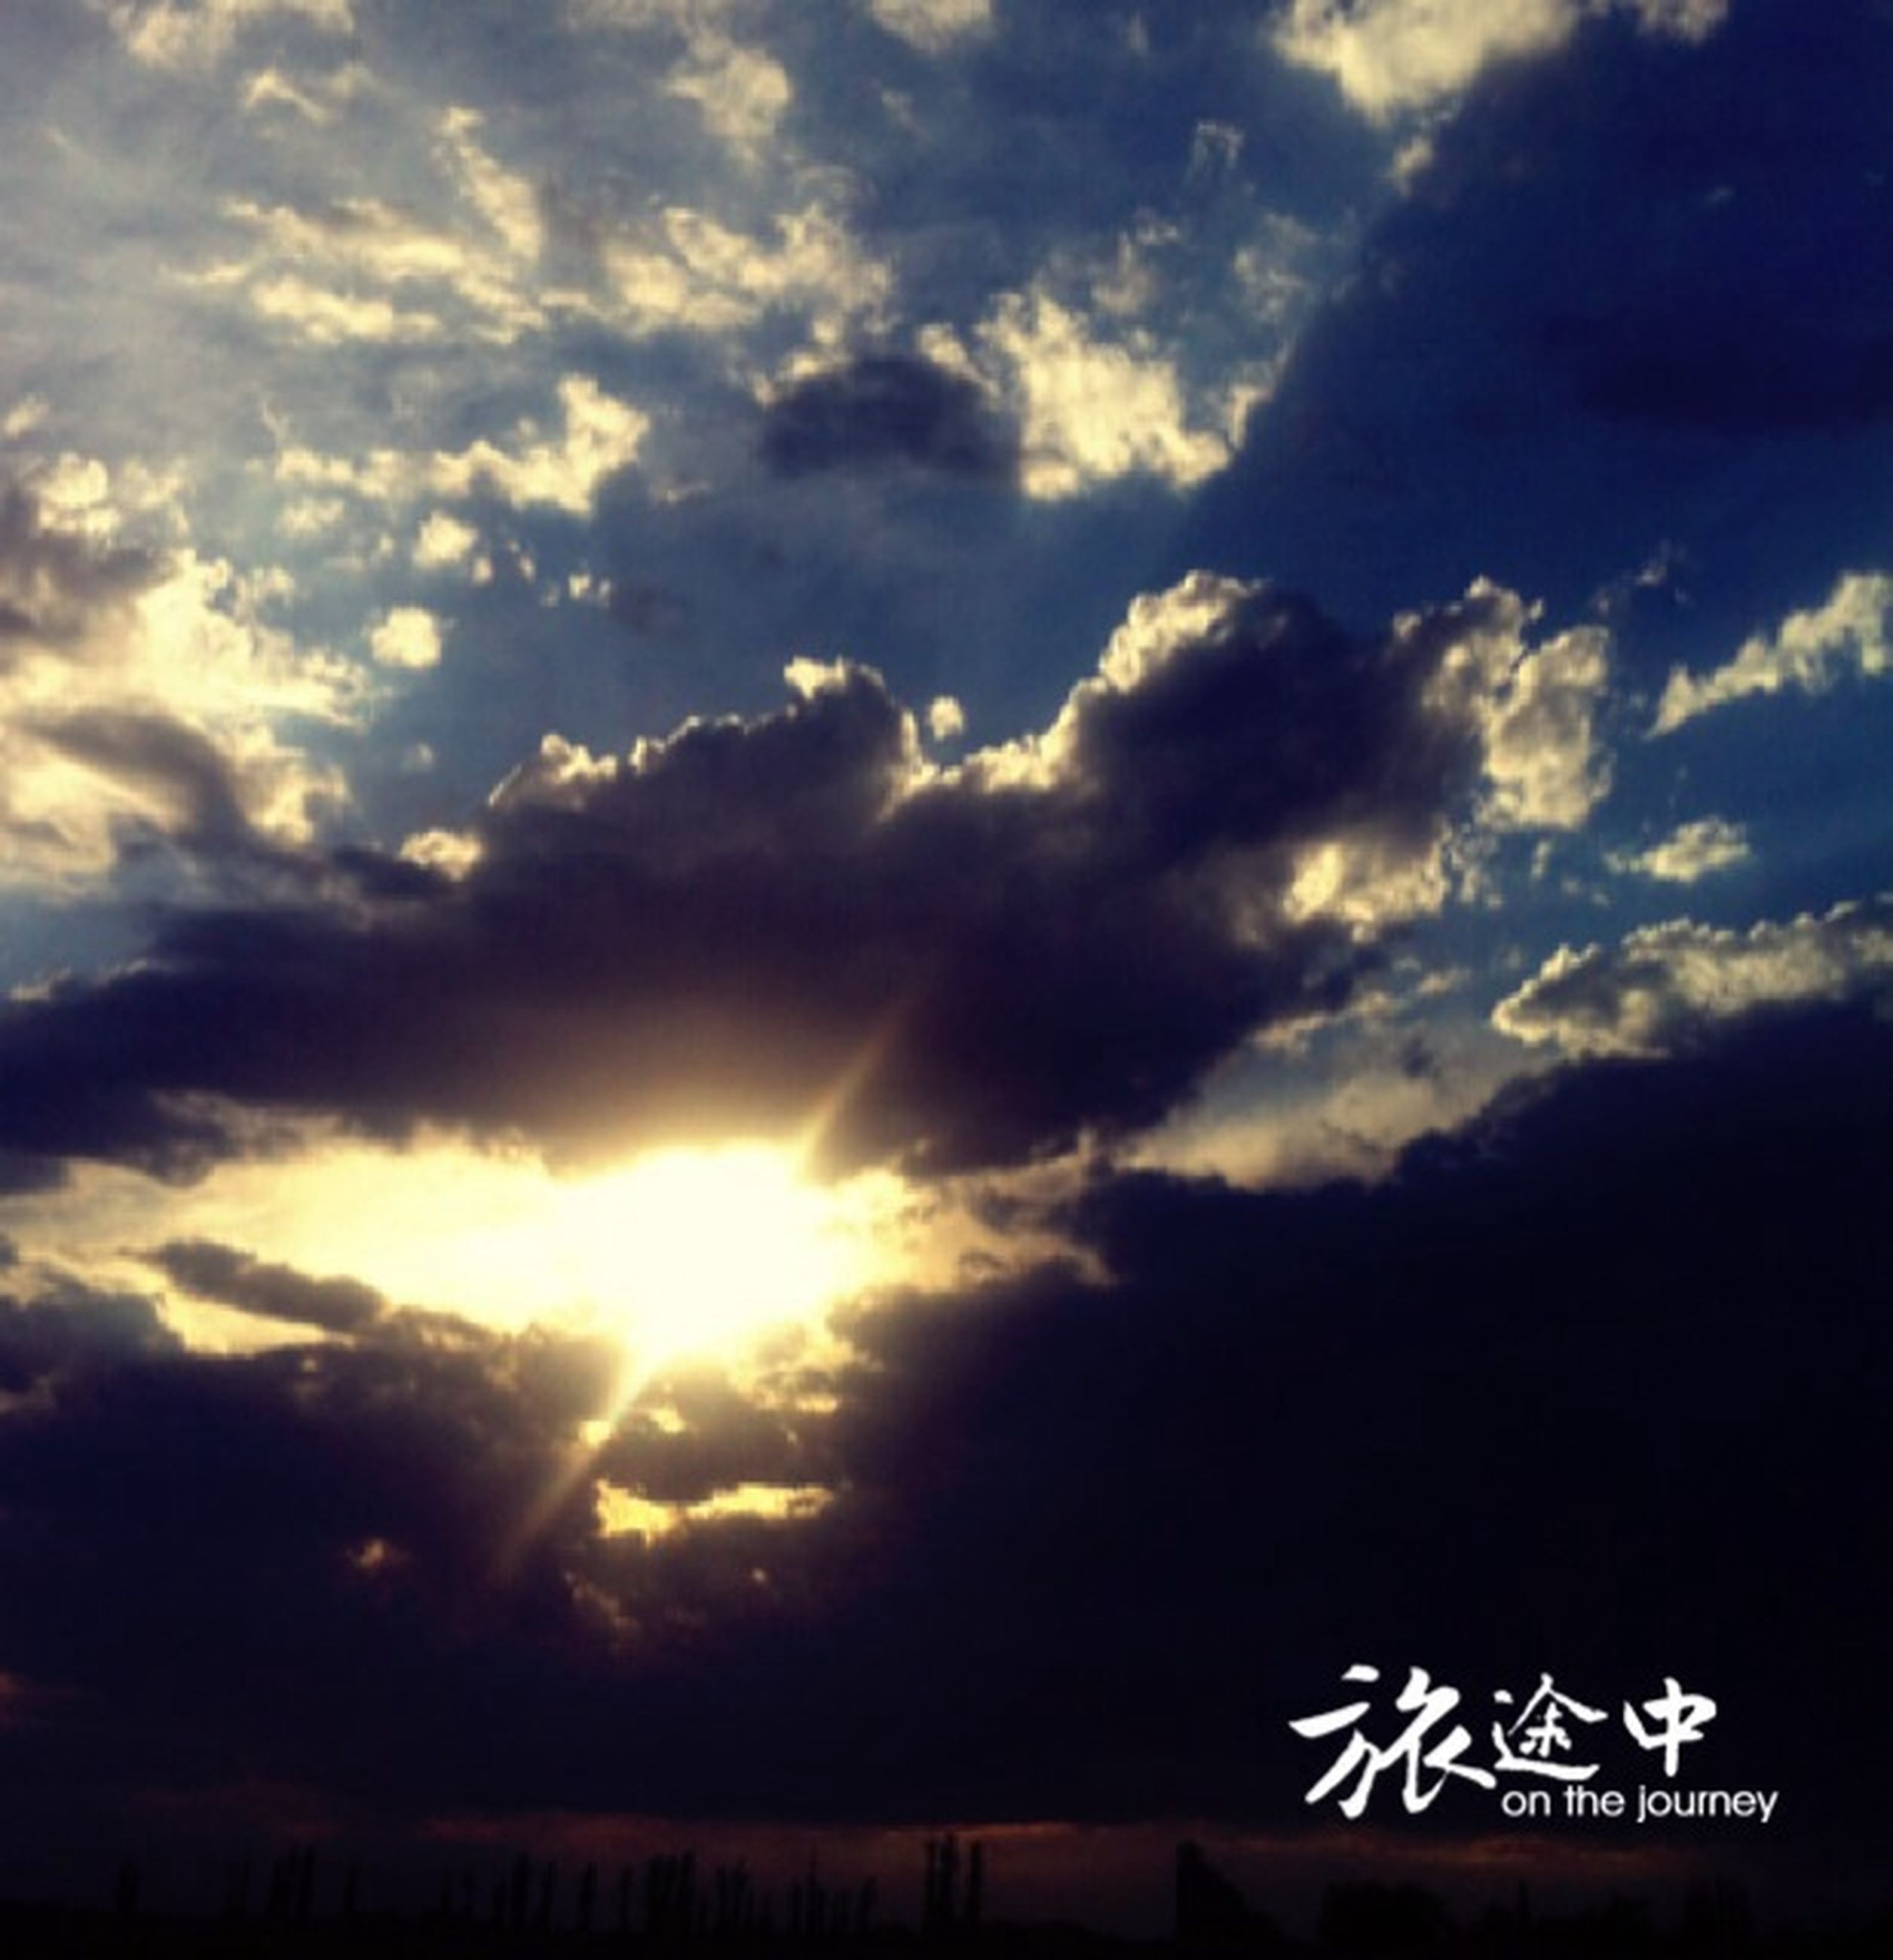 sky, cloud - sky, sun, tranquility, sunbeam, beauty in nature, scenics, tranquil scene, nature, silhouette, sunlight, cloudy, cloud, low angle view, cloudscape, sunset, idyllic, outdoors, no people, weather